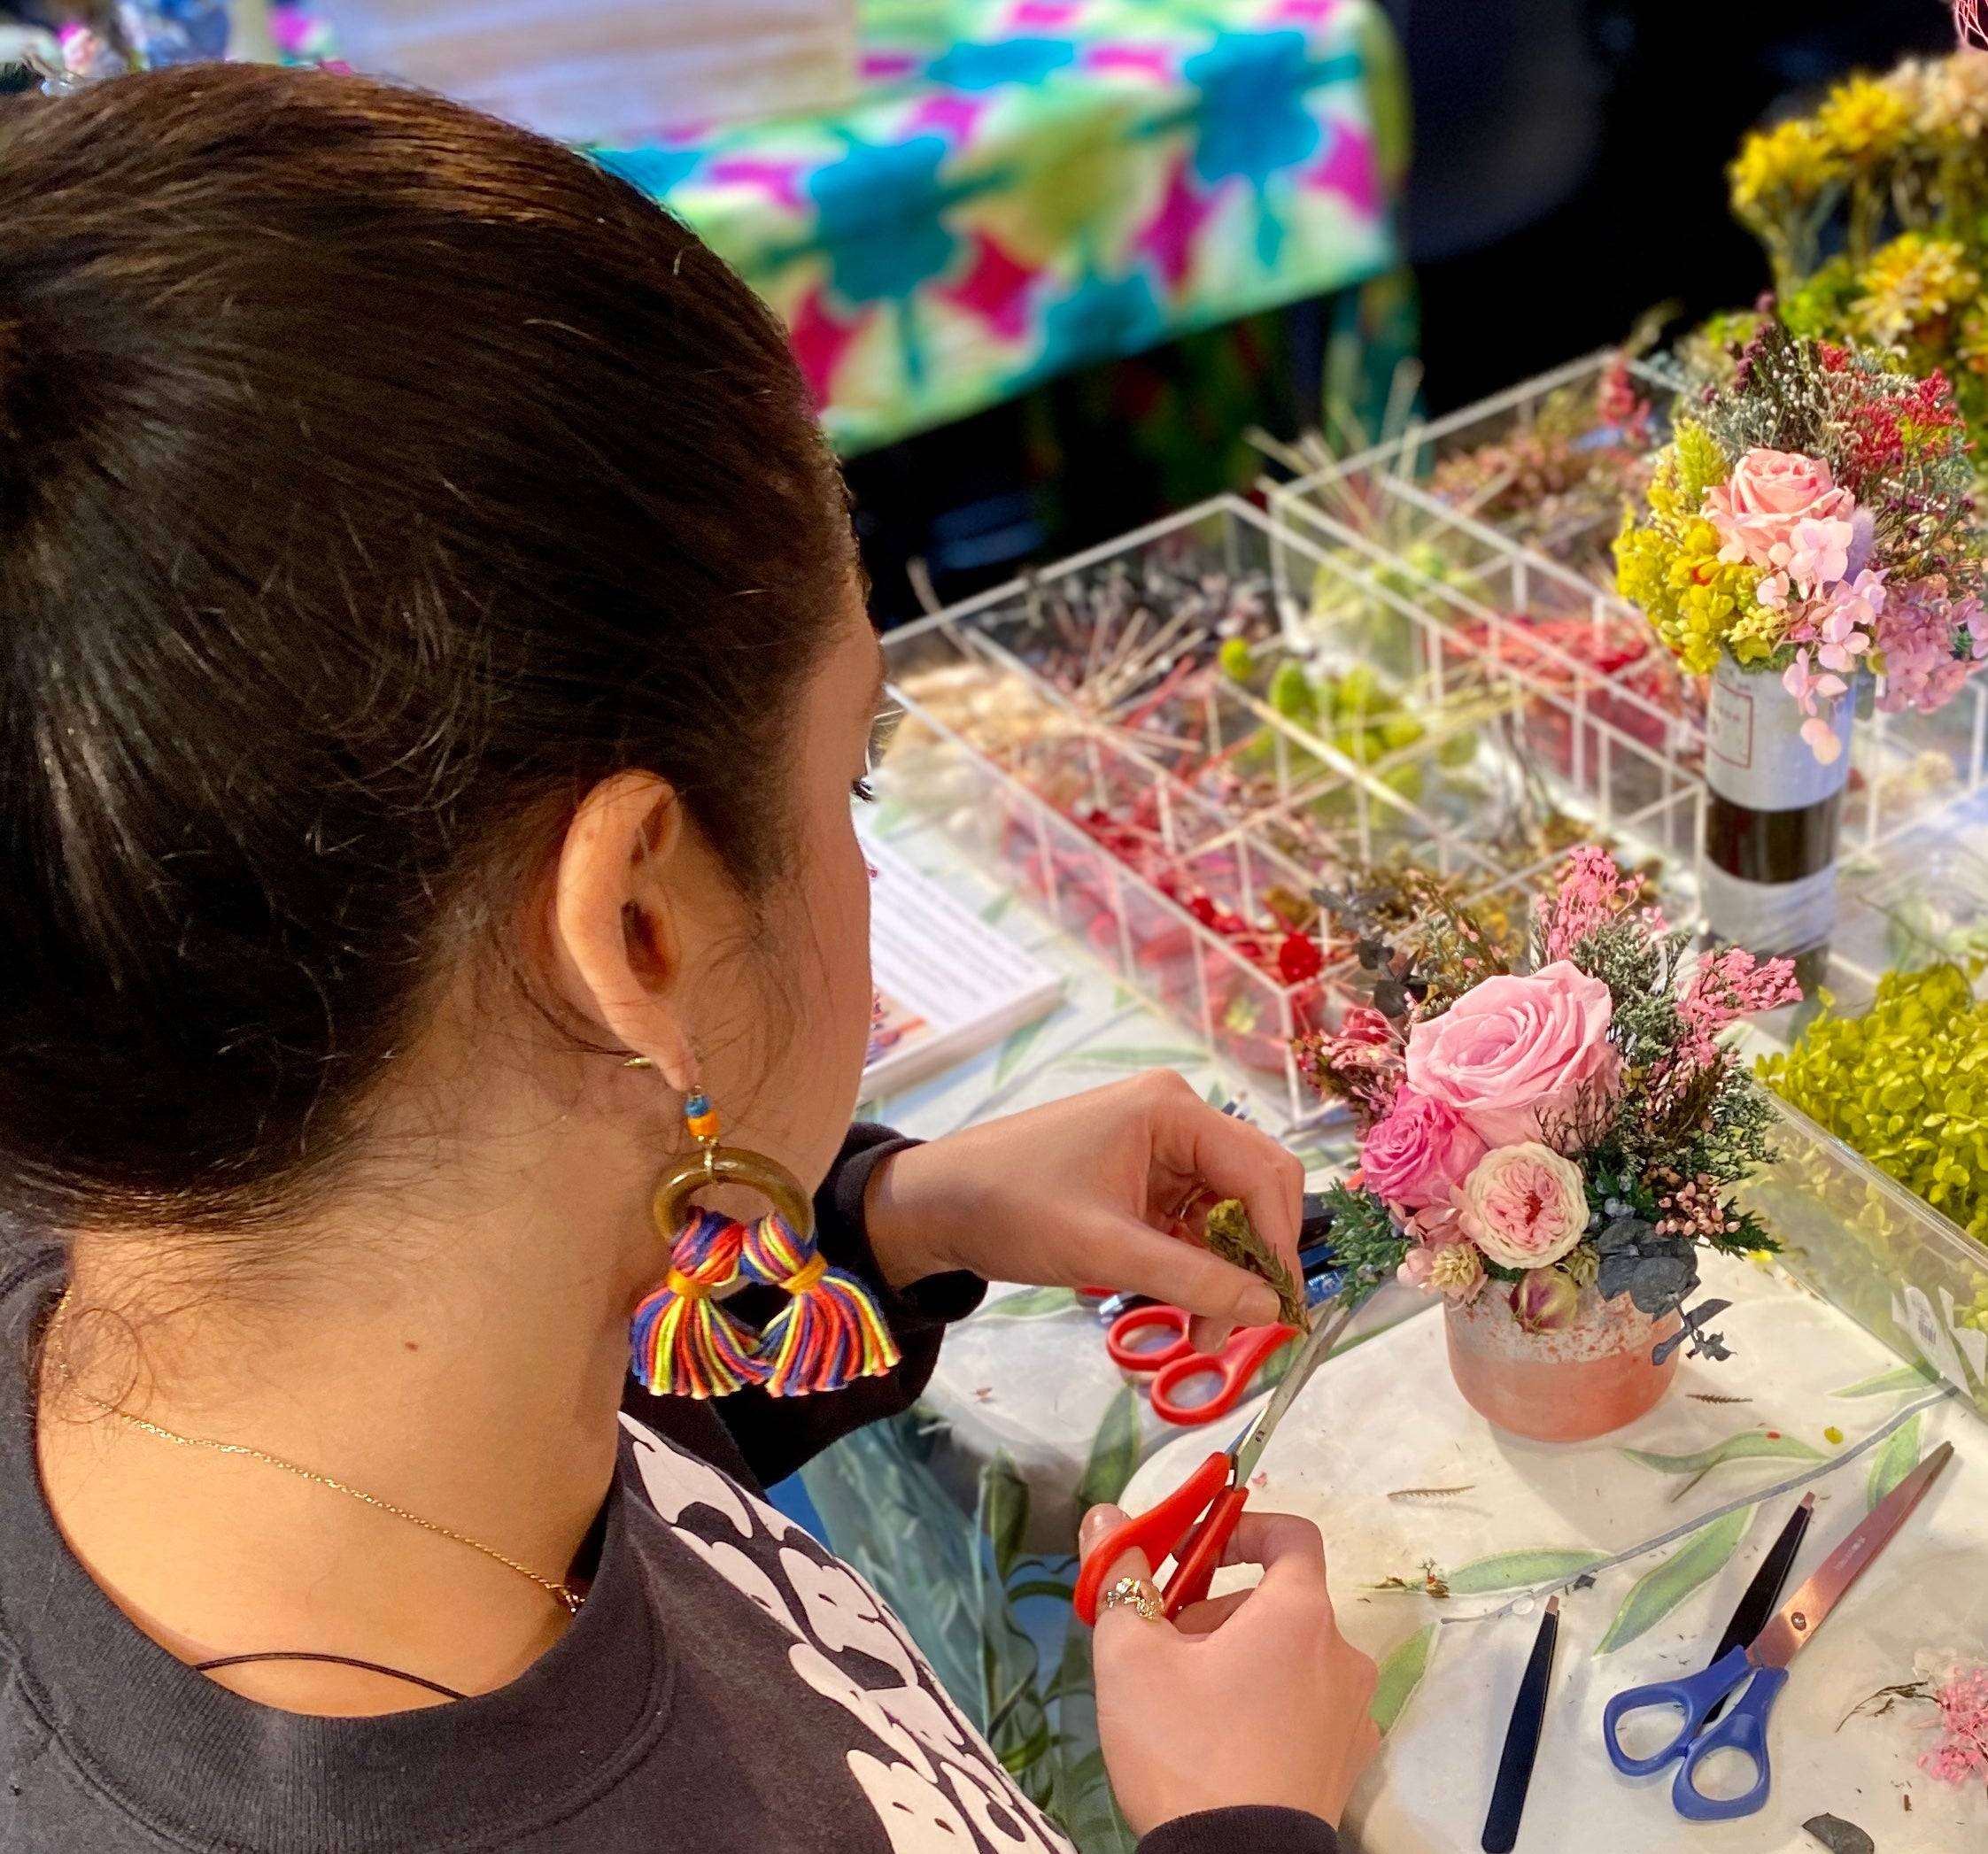 Donate a floral arrangement workshop to a cancer patient at Mt. Sinai Hospital - Emma vase (standard size)